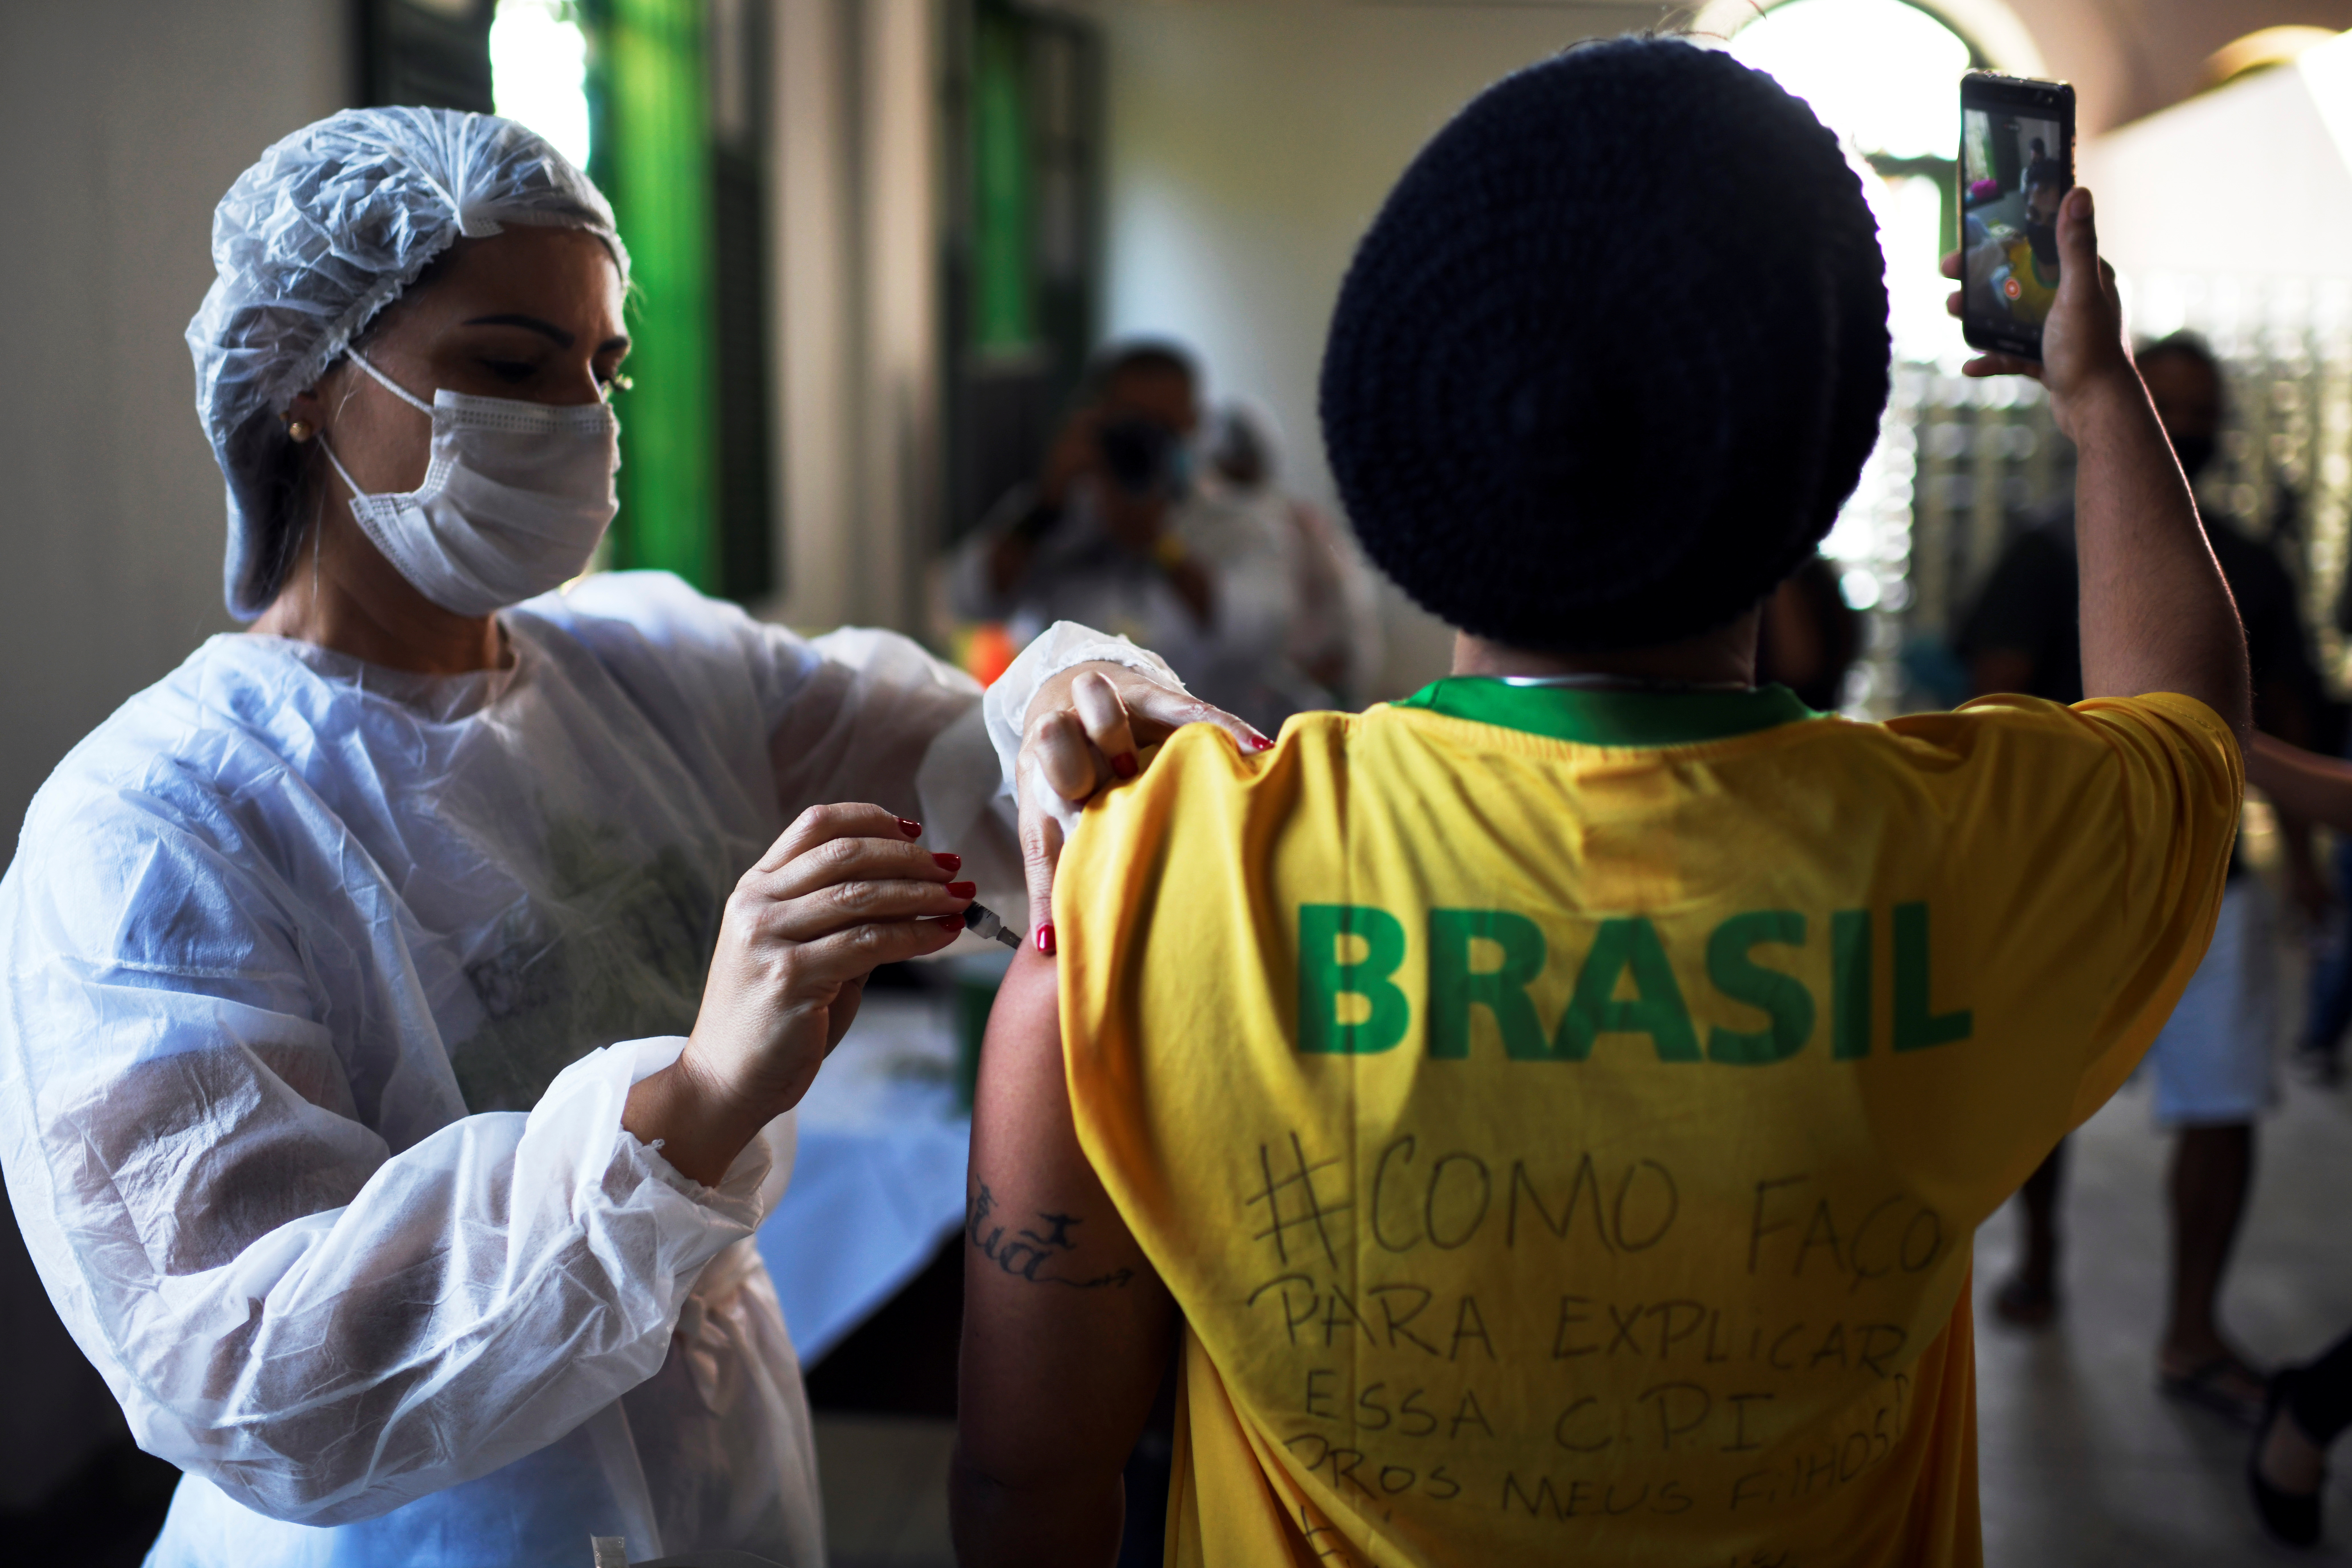 A health worker administers a dose of Johnson & Johnson vaccine against the coronavirus disease (COVID-19) to a resident as he takes a selfie, during mass vaccination at the Ilha Grande island, one of the most famous tourist spots in Rio de Janeiro state, Brazil, July 10, 2021. REUTERS/Lucas Landau